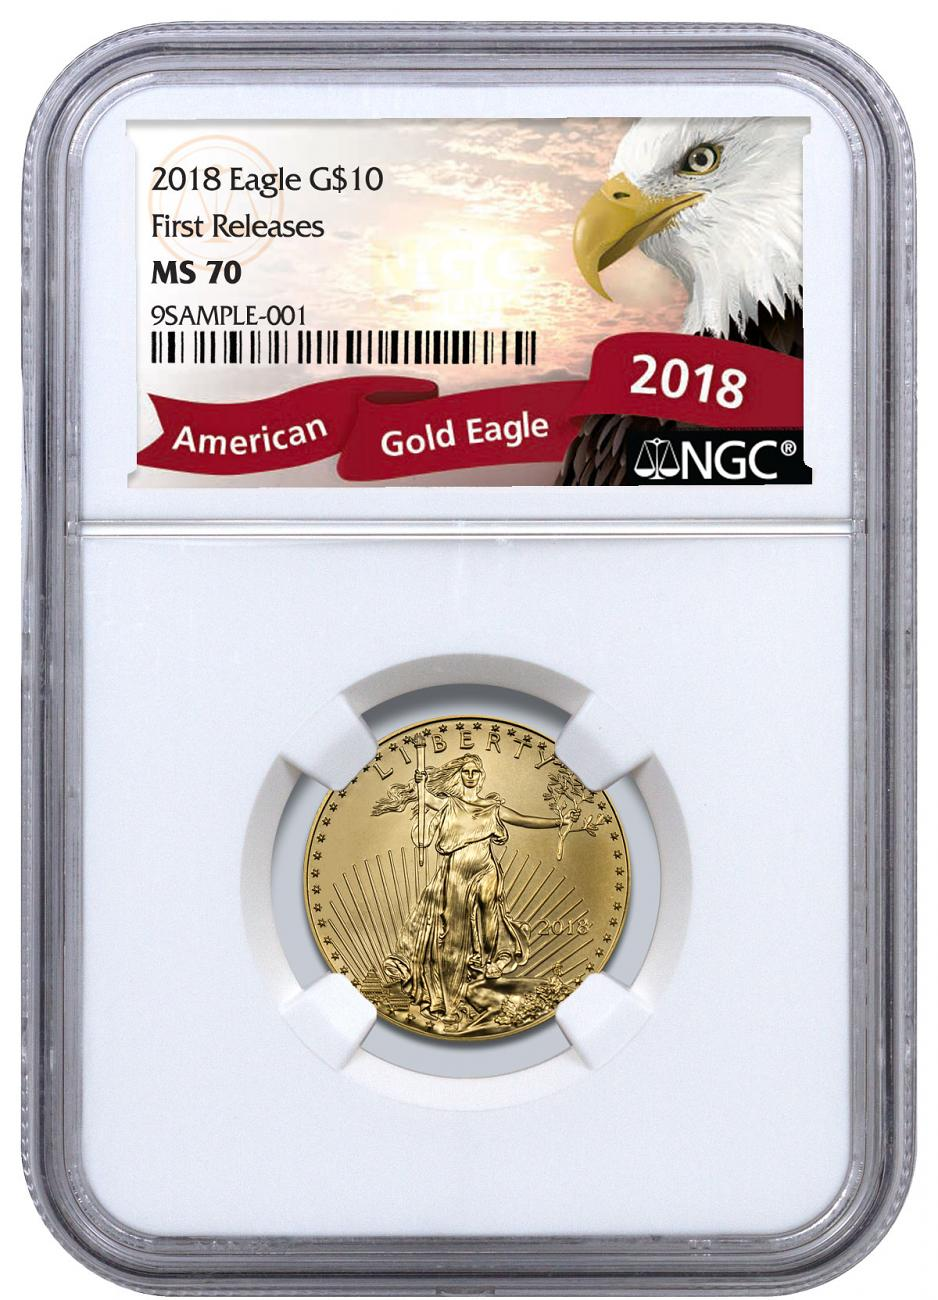 2018 1/4 oz Gold American Eagle $10 NGC MS70 FR Exclusive Eagle Label